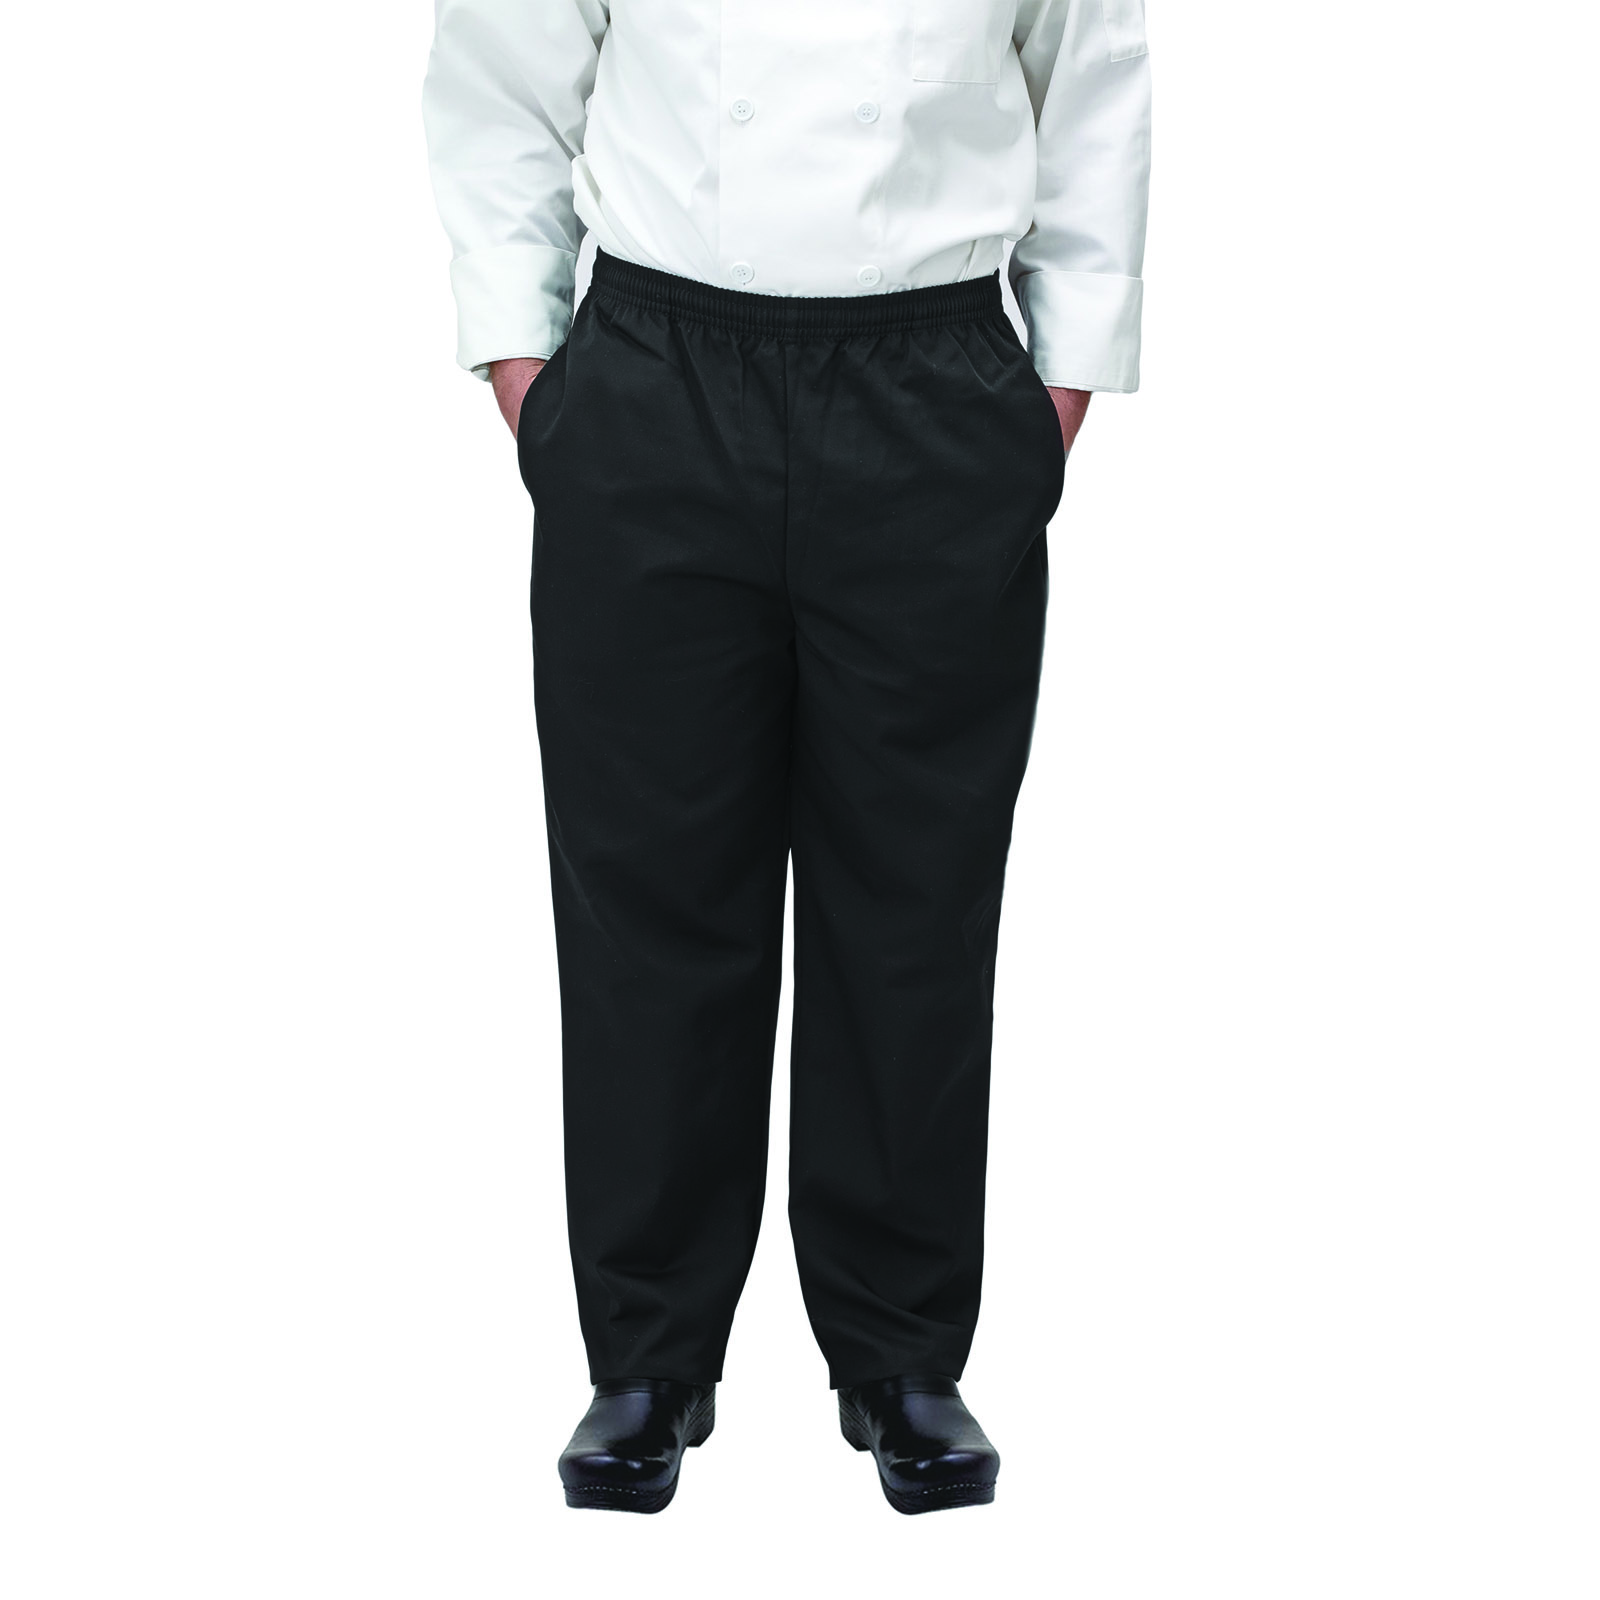 Winco UNF-2KS chef's pants